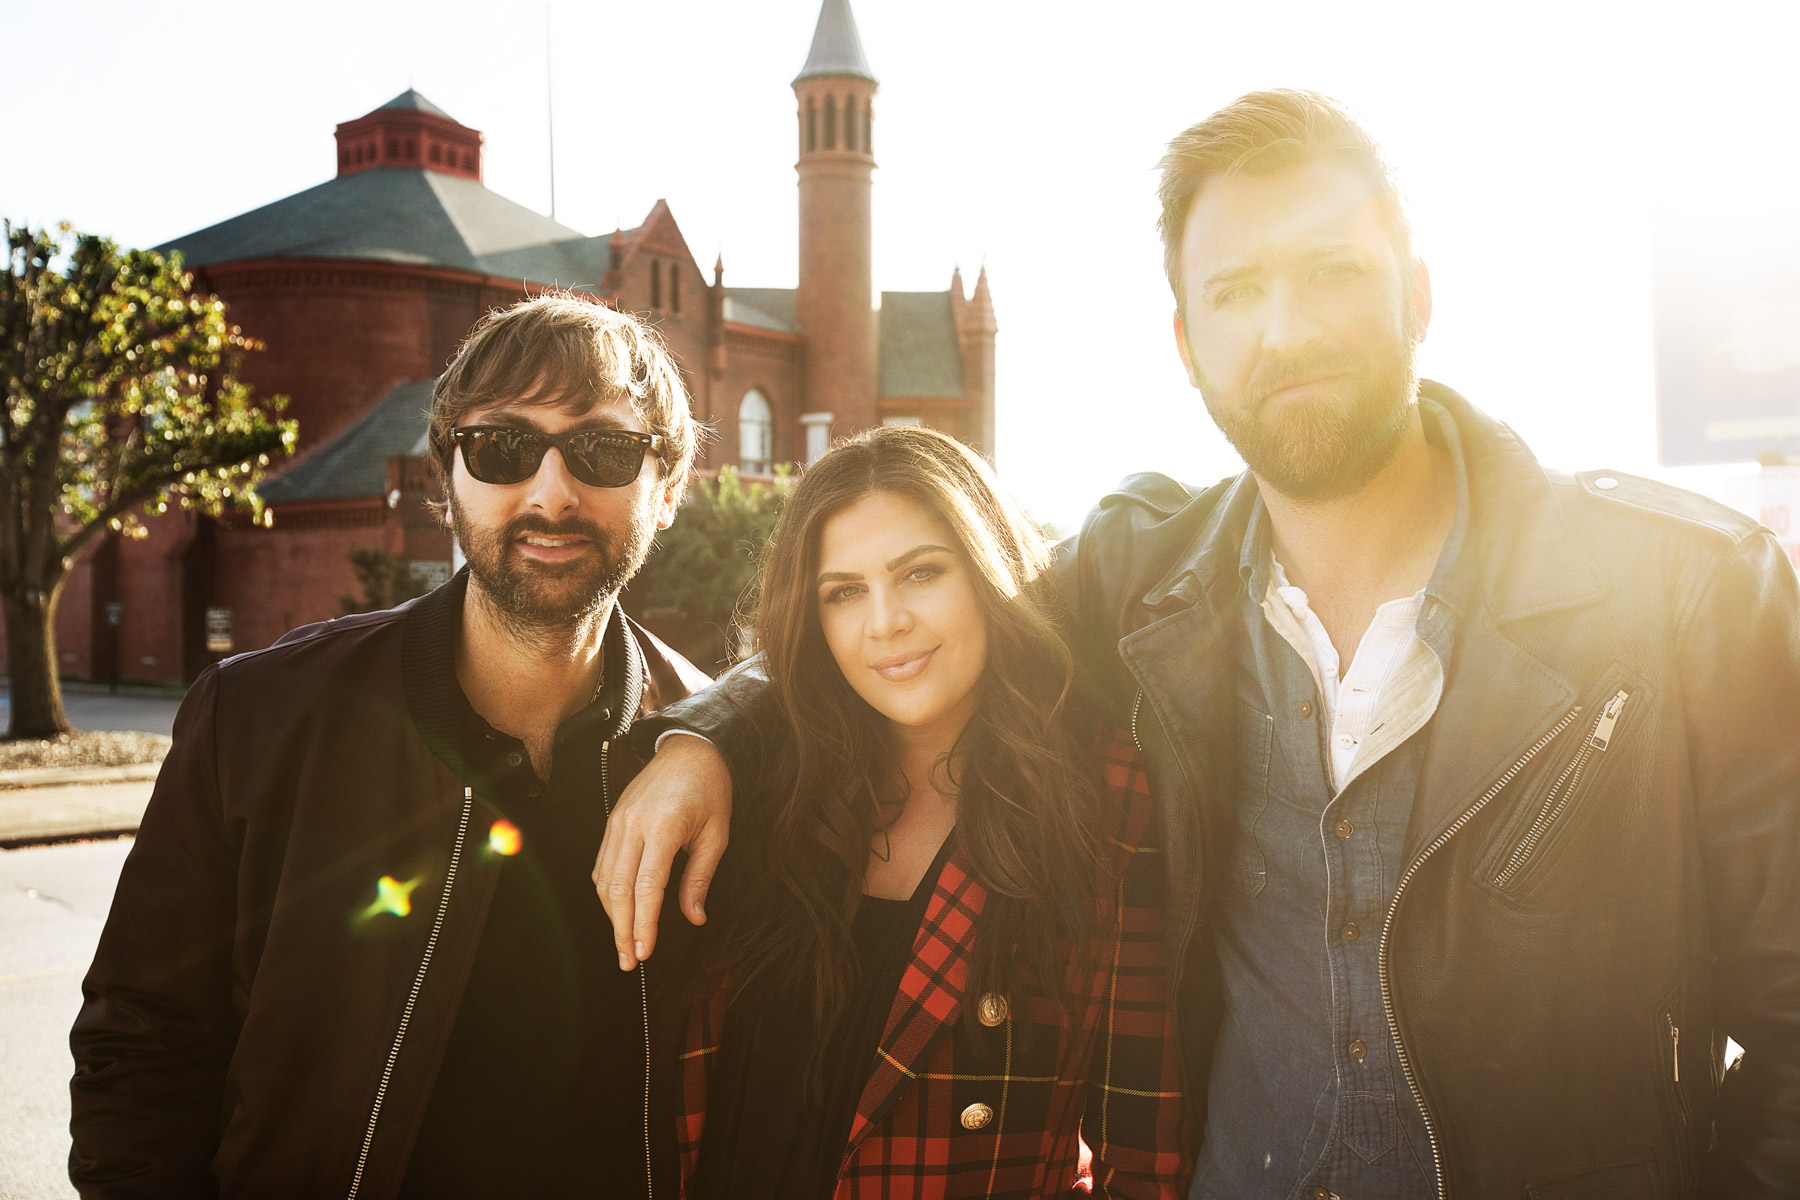 Lady Antebellum Hilton Spotify Live Nation Music Happens Here by Boston based commercial celebrity photographer Brian Nevins